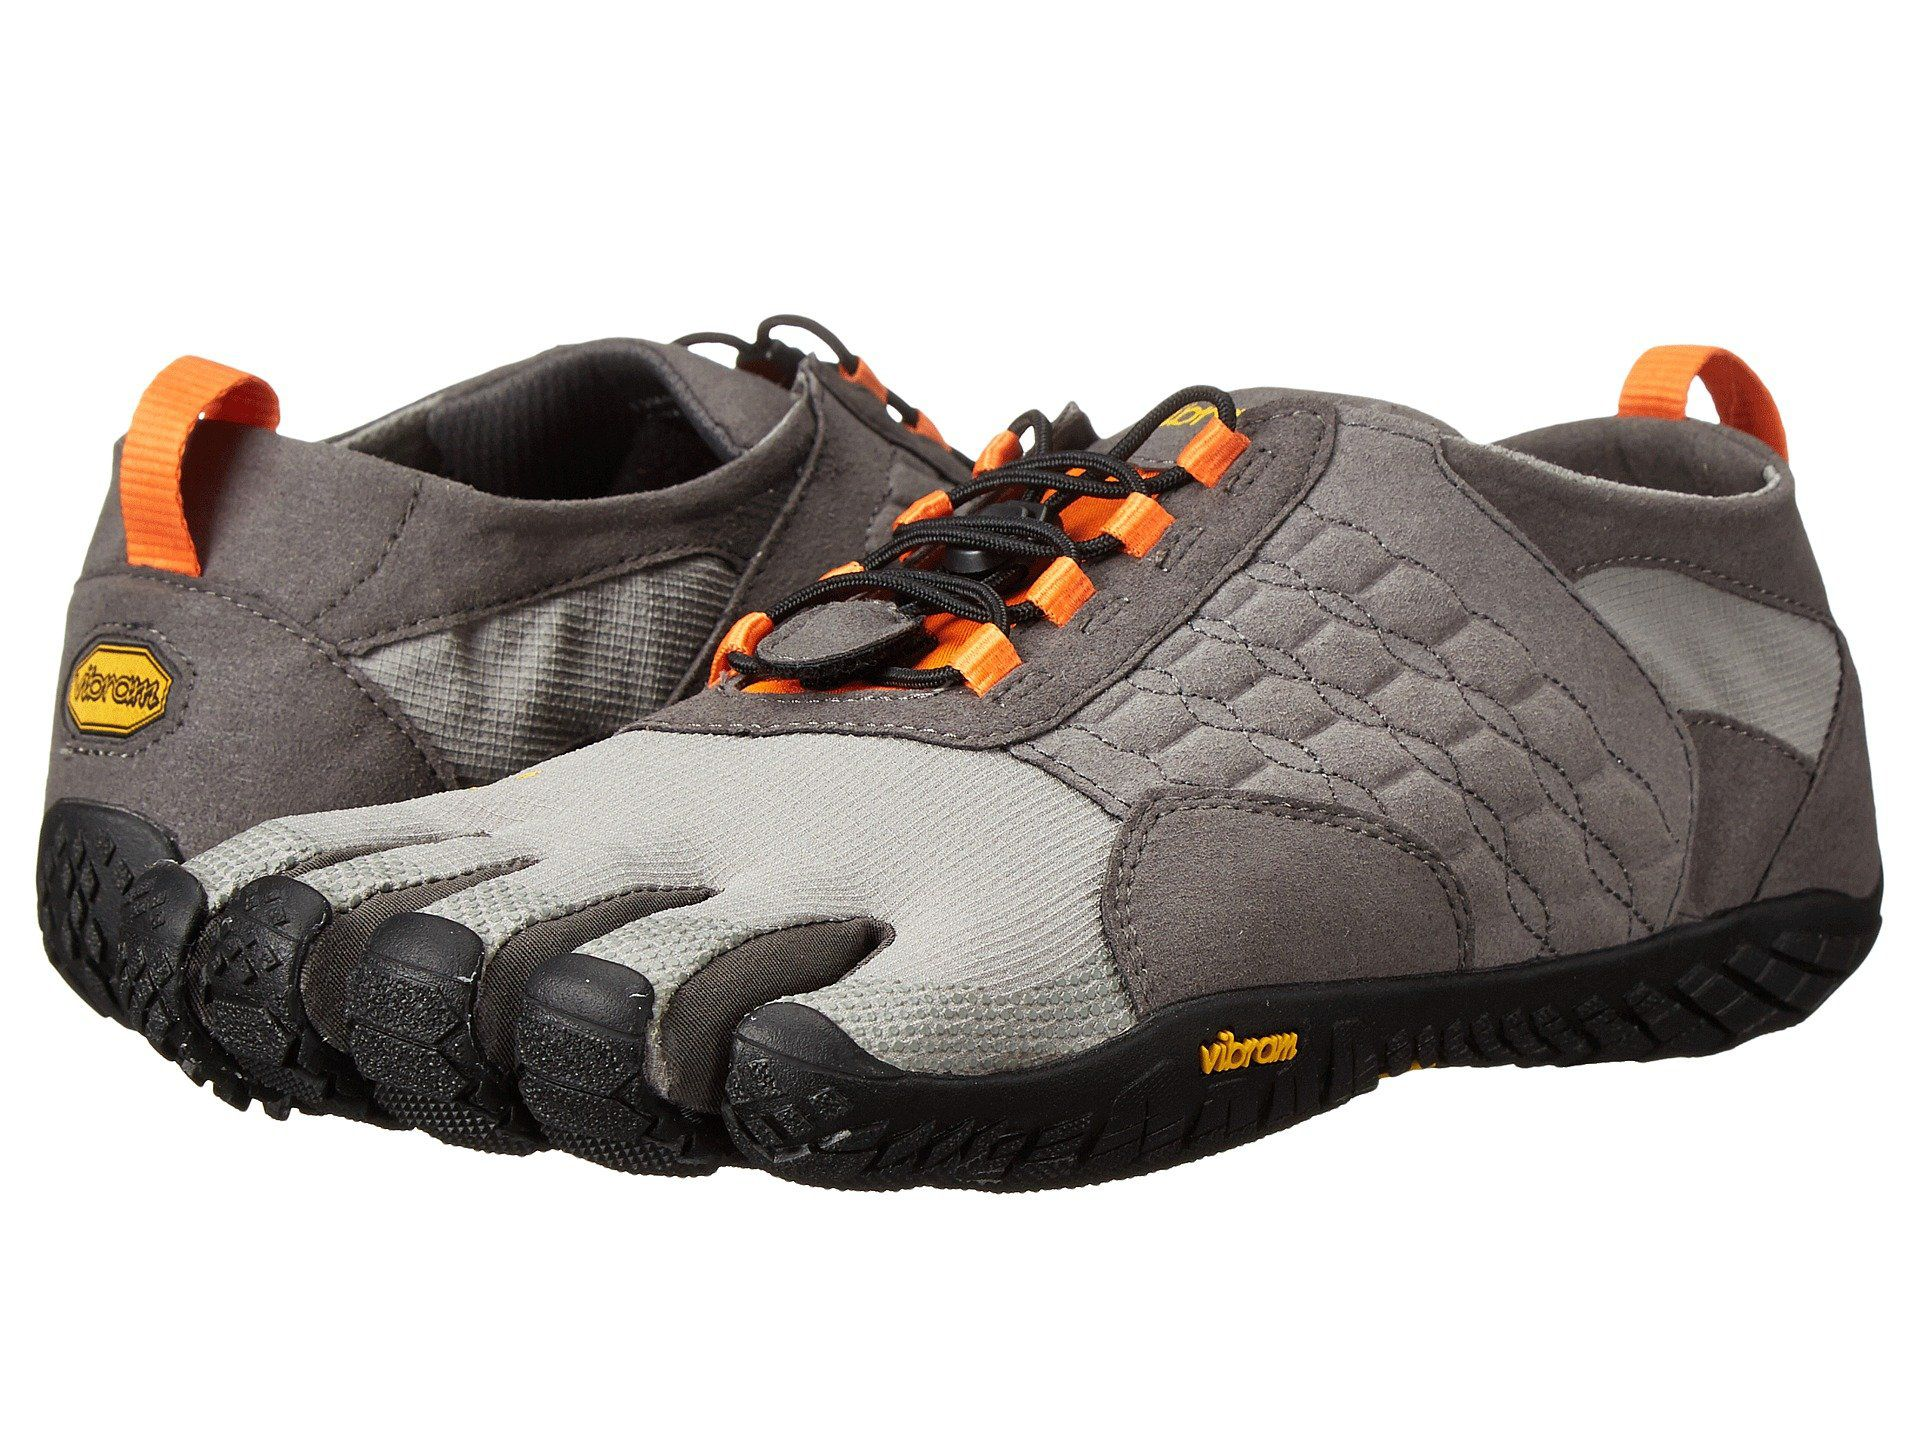 Minimalist Running Shoes For Weightlifting